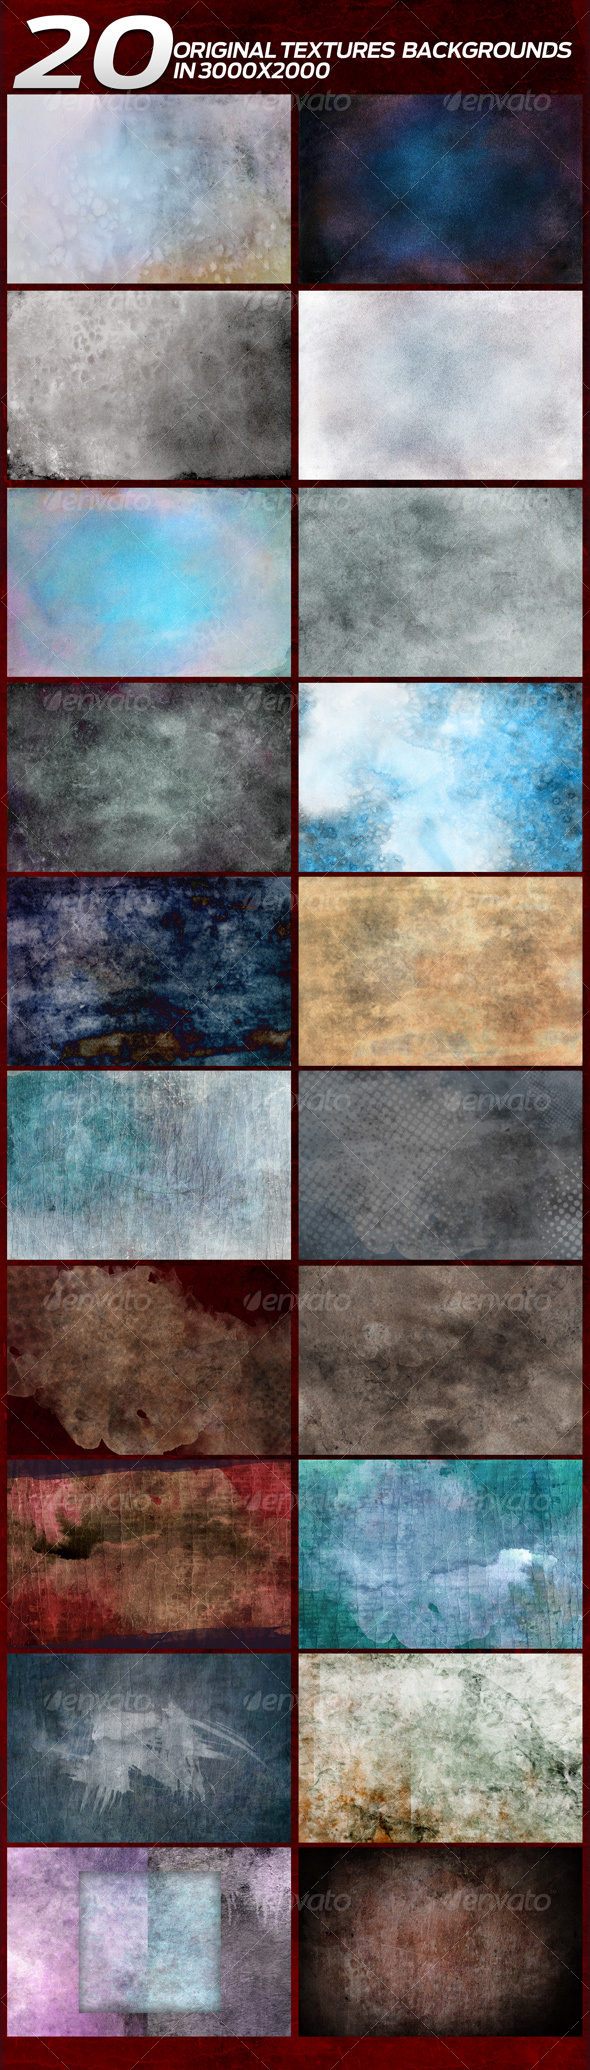 20 Original Textures/Backgrounds in 3000x2000 - Miscellaneous Textures